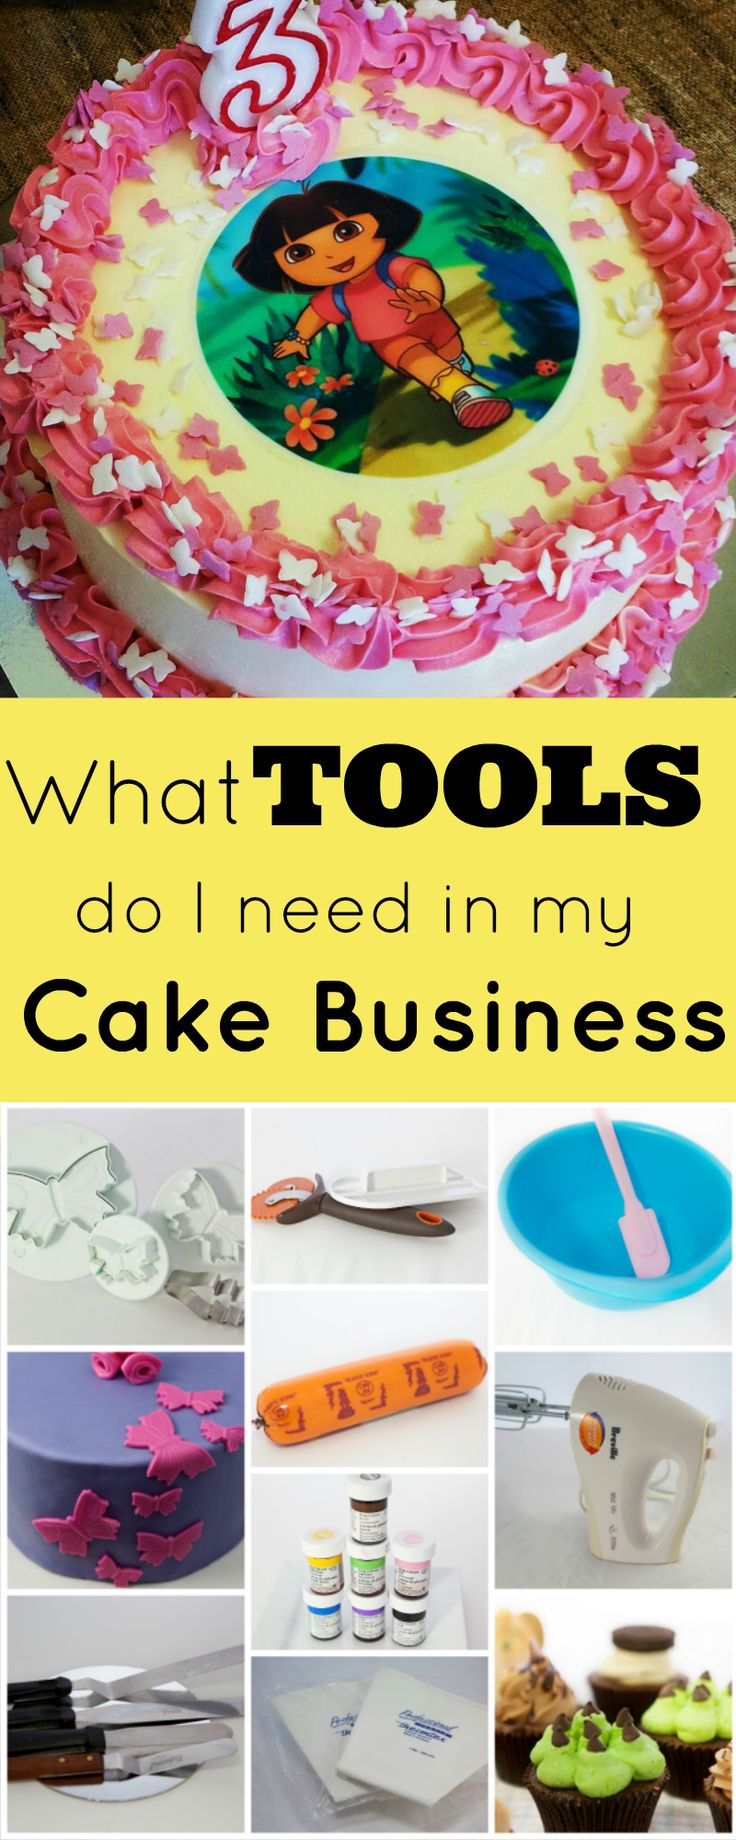 19 Baking Charts (Tips, Recipes, Guides and Templates) That Every Baker Needs to Pin